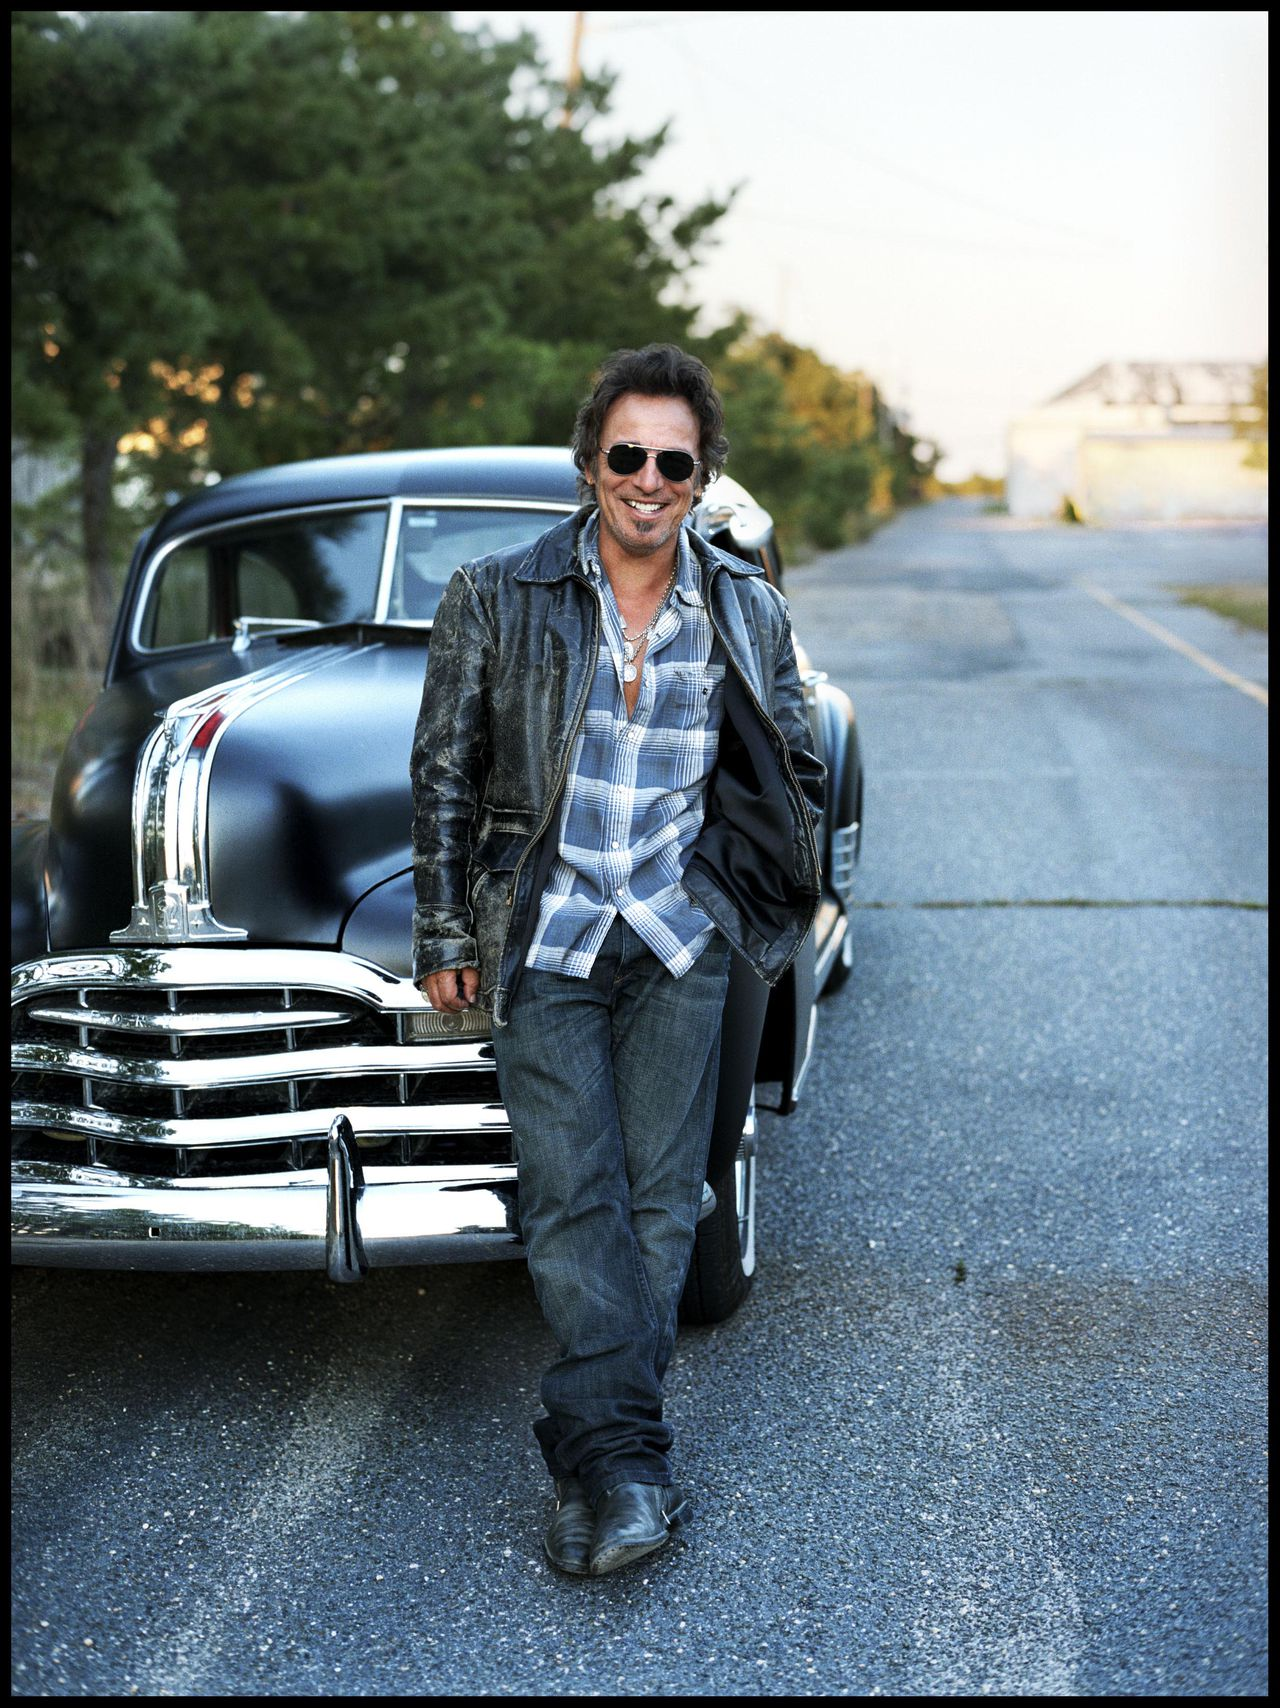 "Bruce Springsteen Foto Bloomberg News An undated handout photo, provided to the media on Monday, Jan. 26, 2009, shows musician Bruce Springsteen. "" Working on a Dream"" by Bruce Springsteen and the E Street Band is released today on Columbia Records, priced at about $18.98. Source: Shorefire Media via Bloomberg News EDITOR'S NOTE: NO SALES"